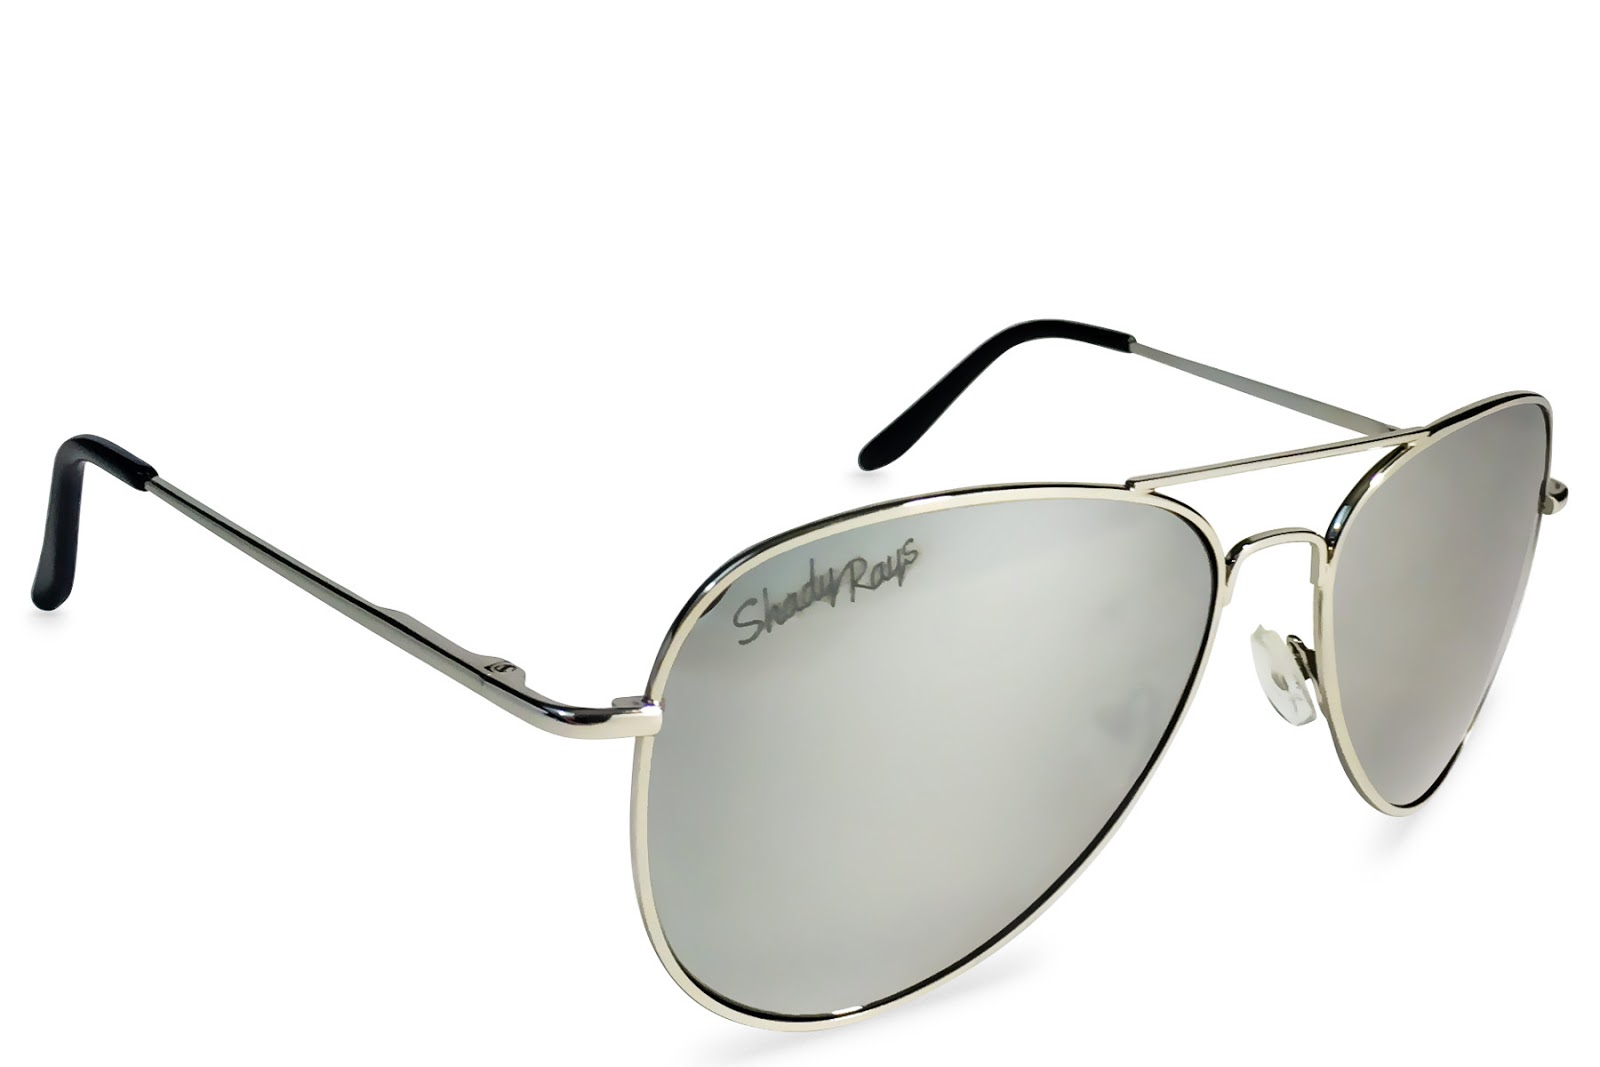 b9e2a910ec1 Giveaway Guy  Shady Rays aviator sunglasses  giveaway